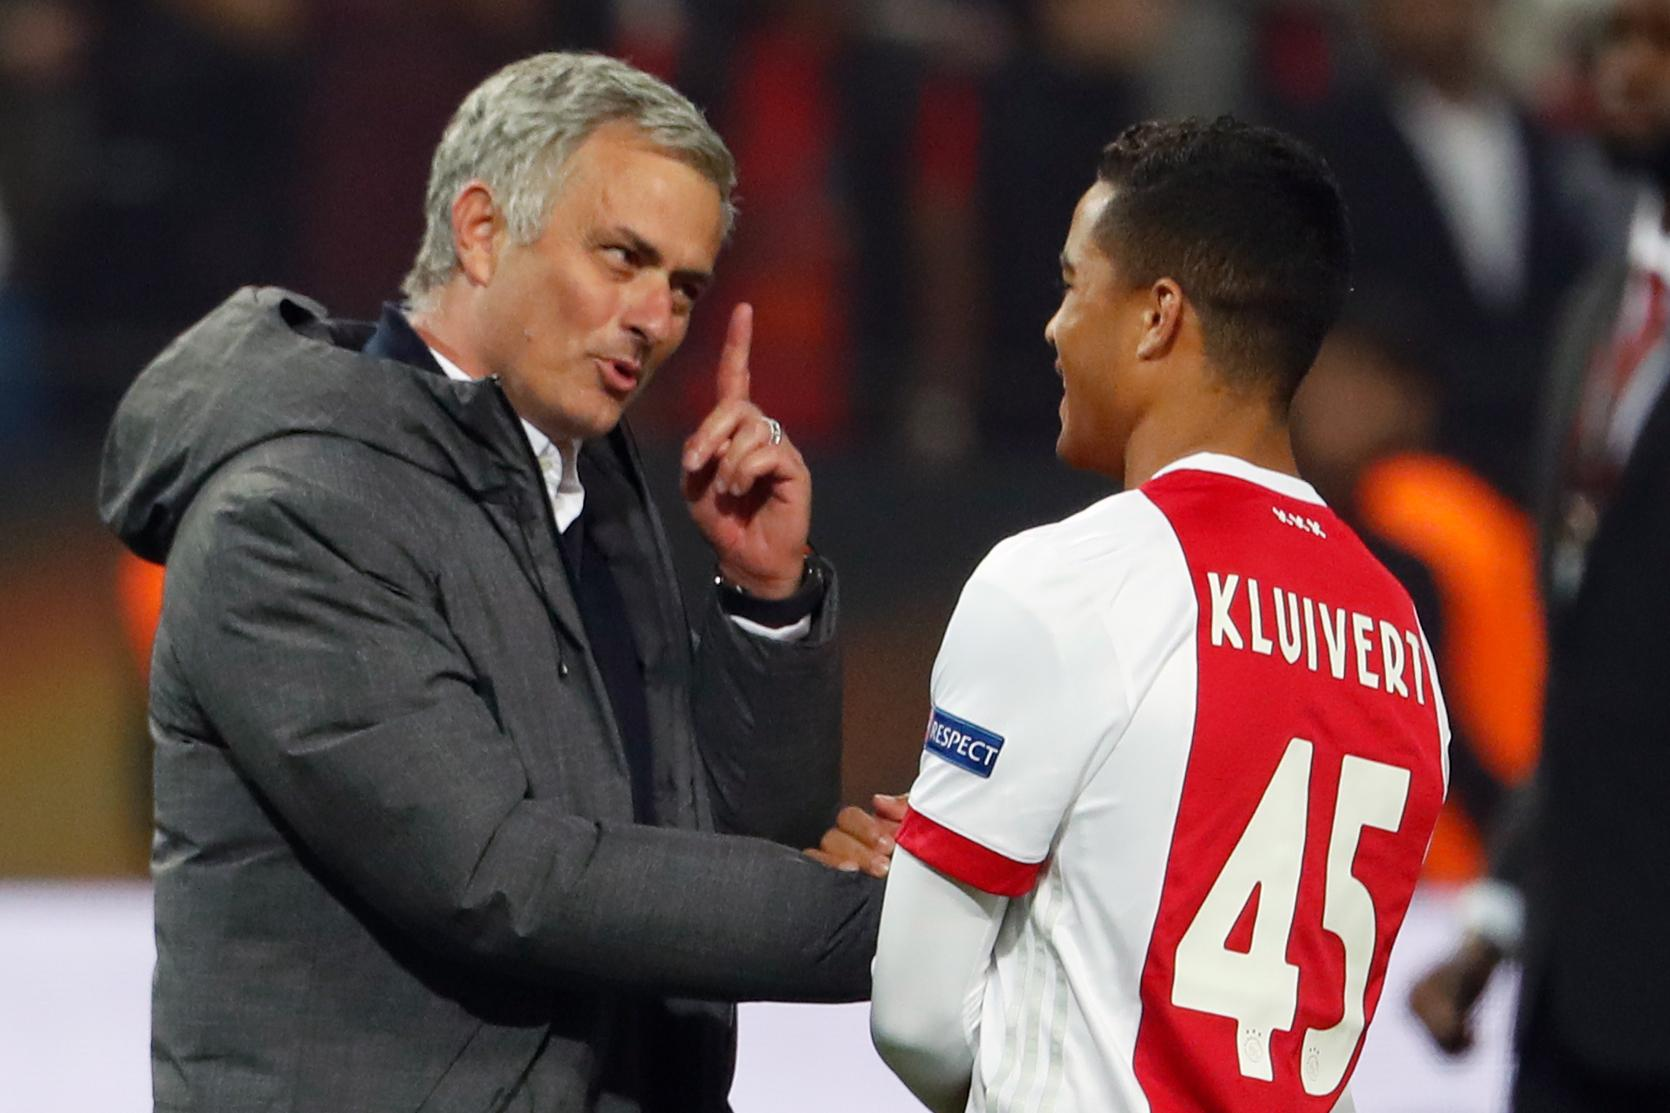 Mourinho won't be so happy when JK45 scores a brace at Old Trafford